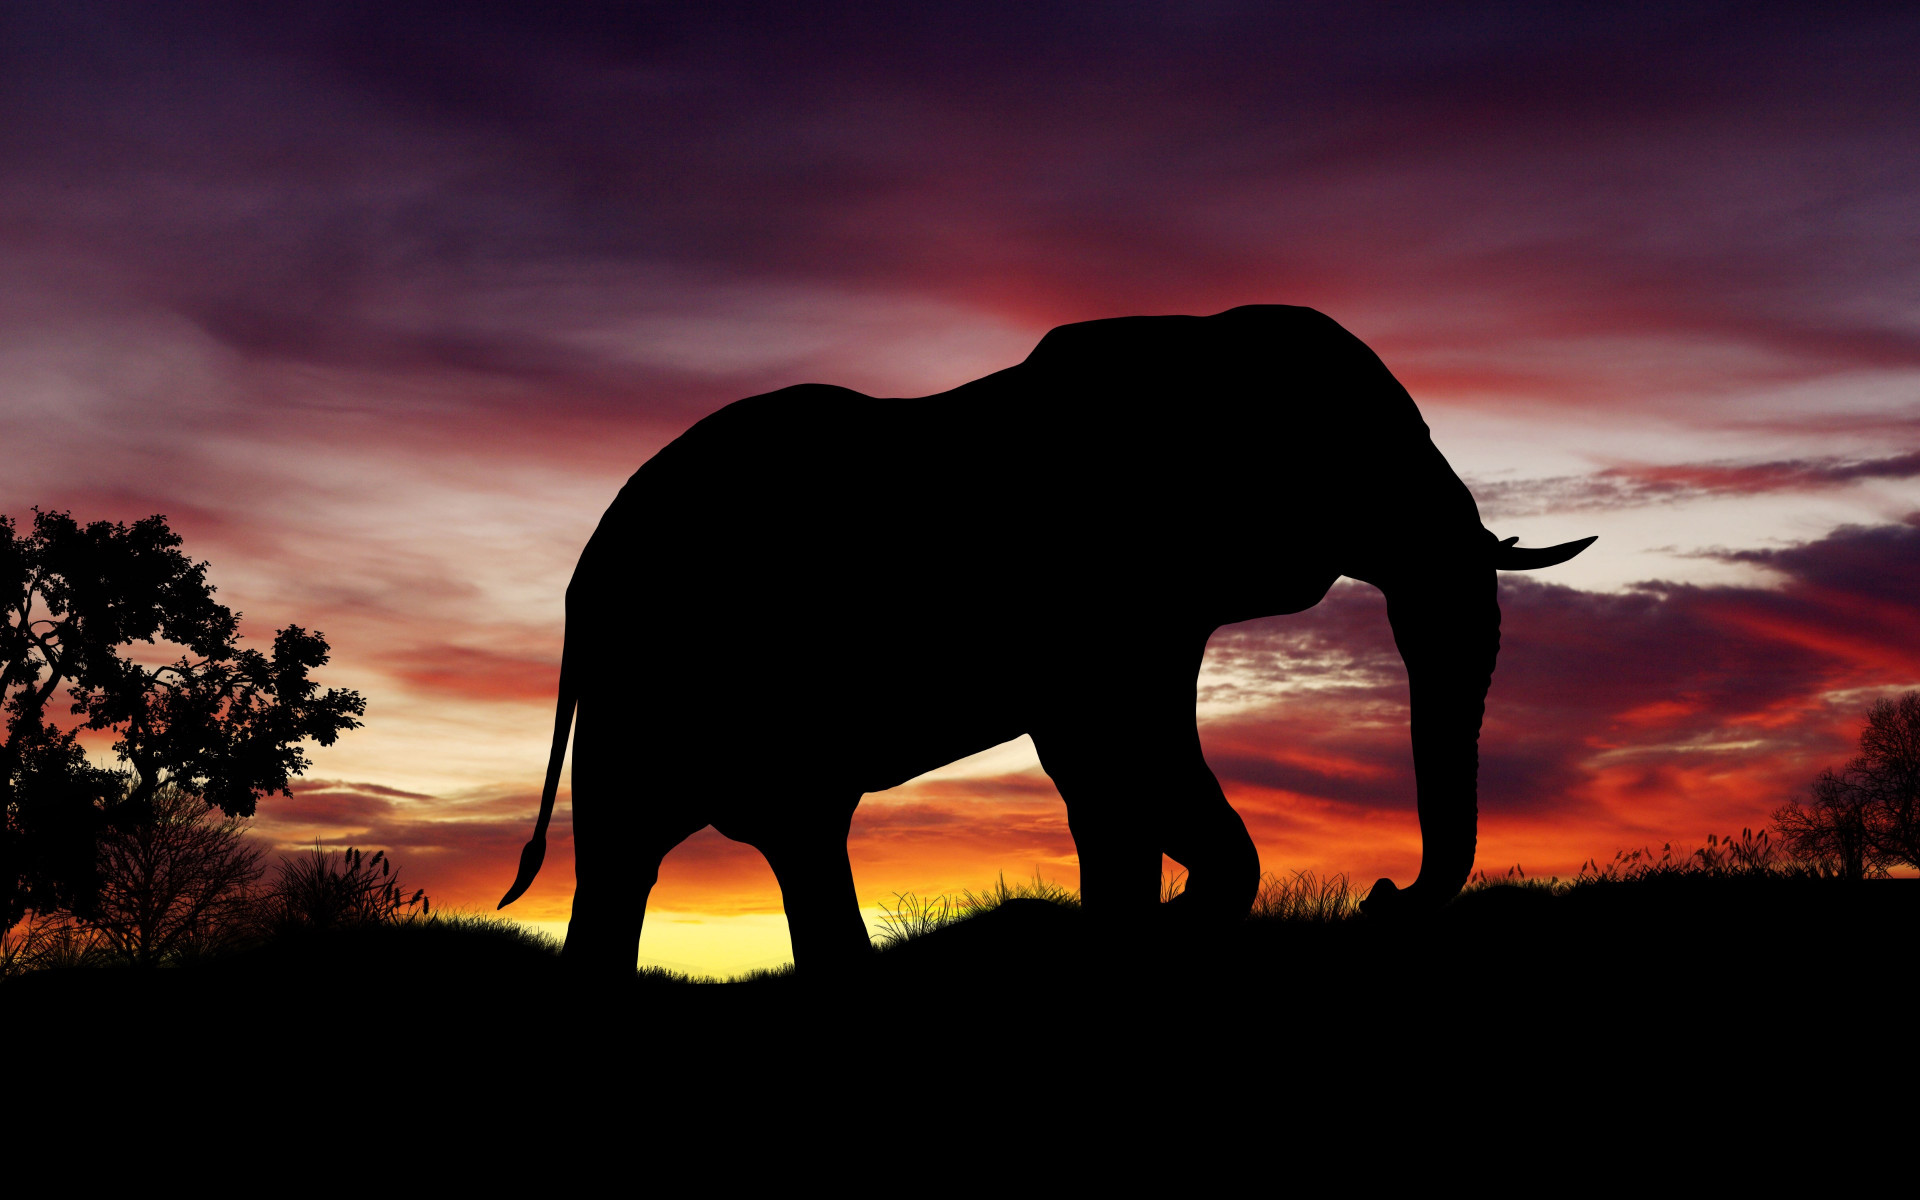 Elephant silhouette | 1920x1200 wallpaper